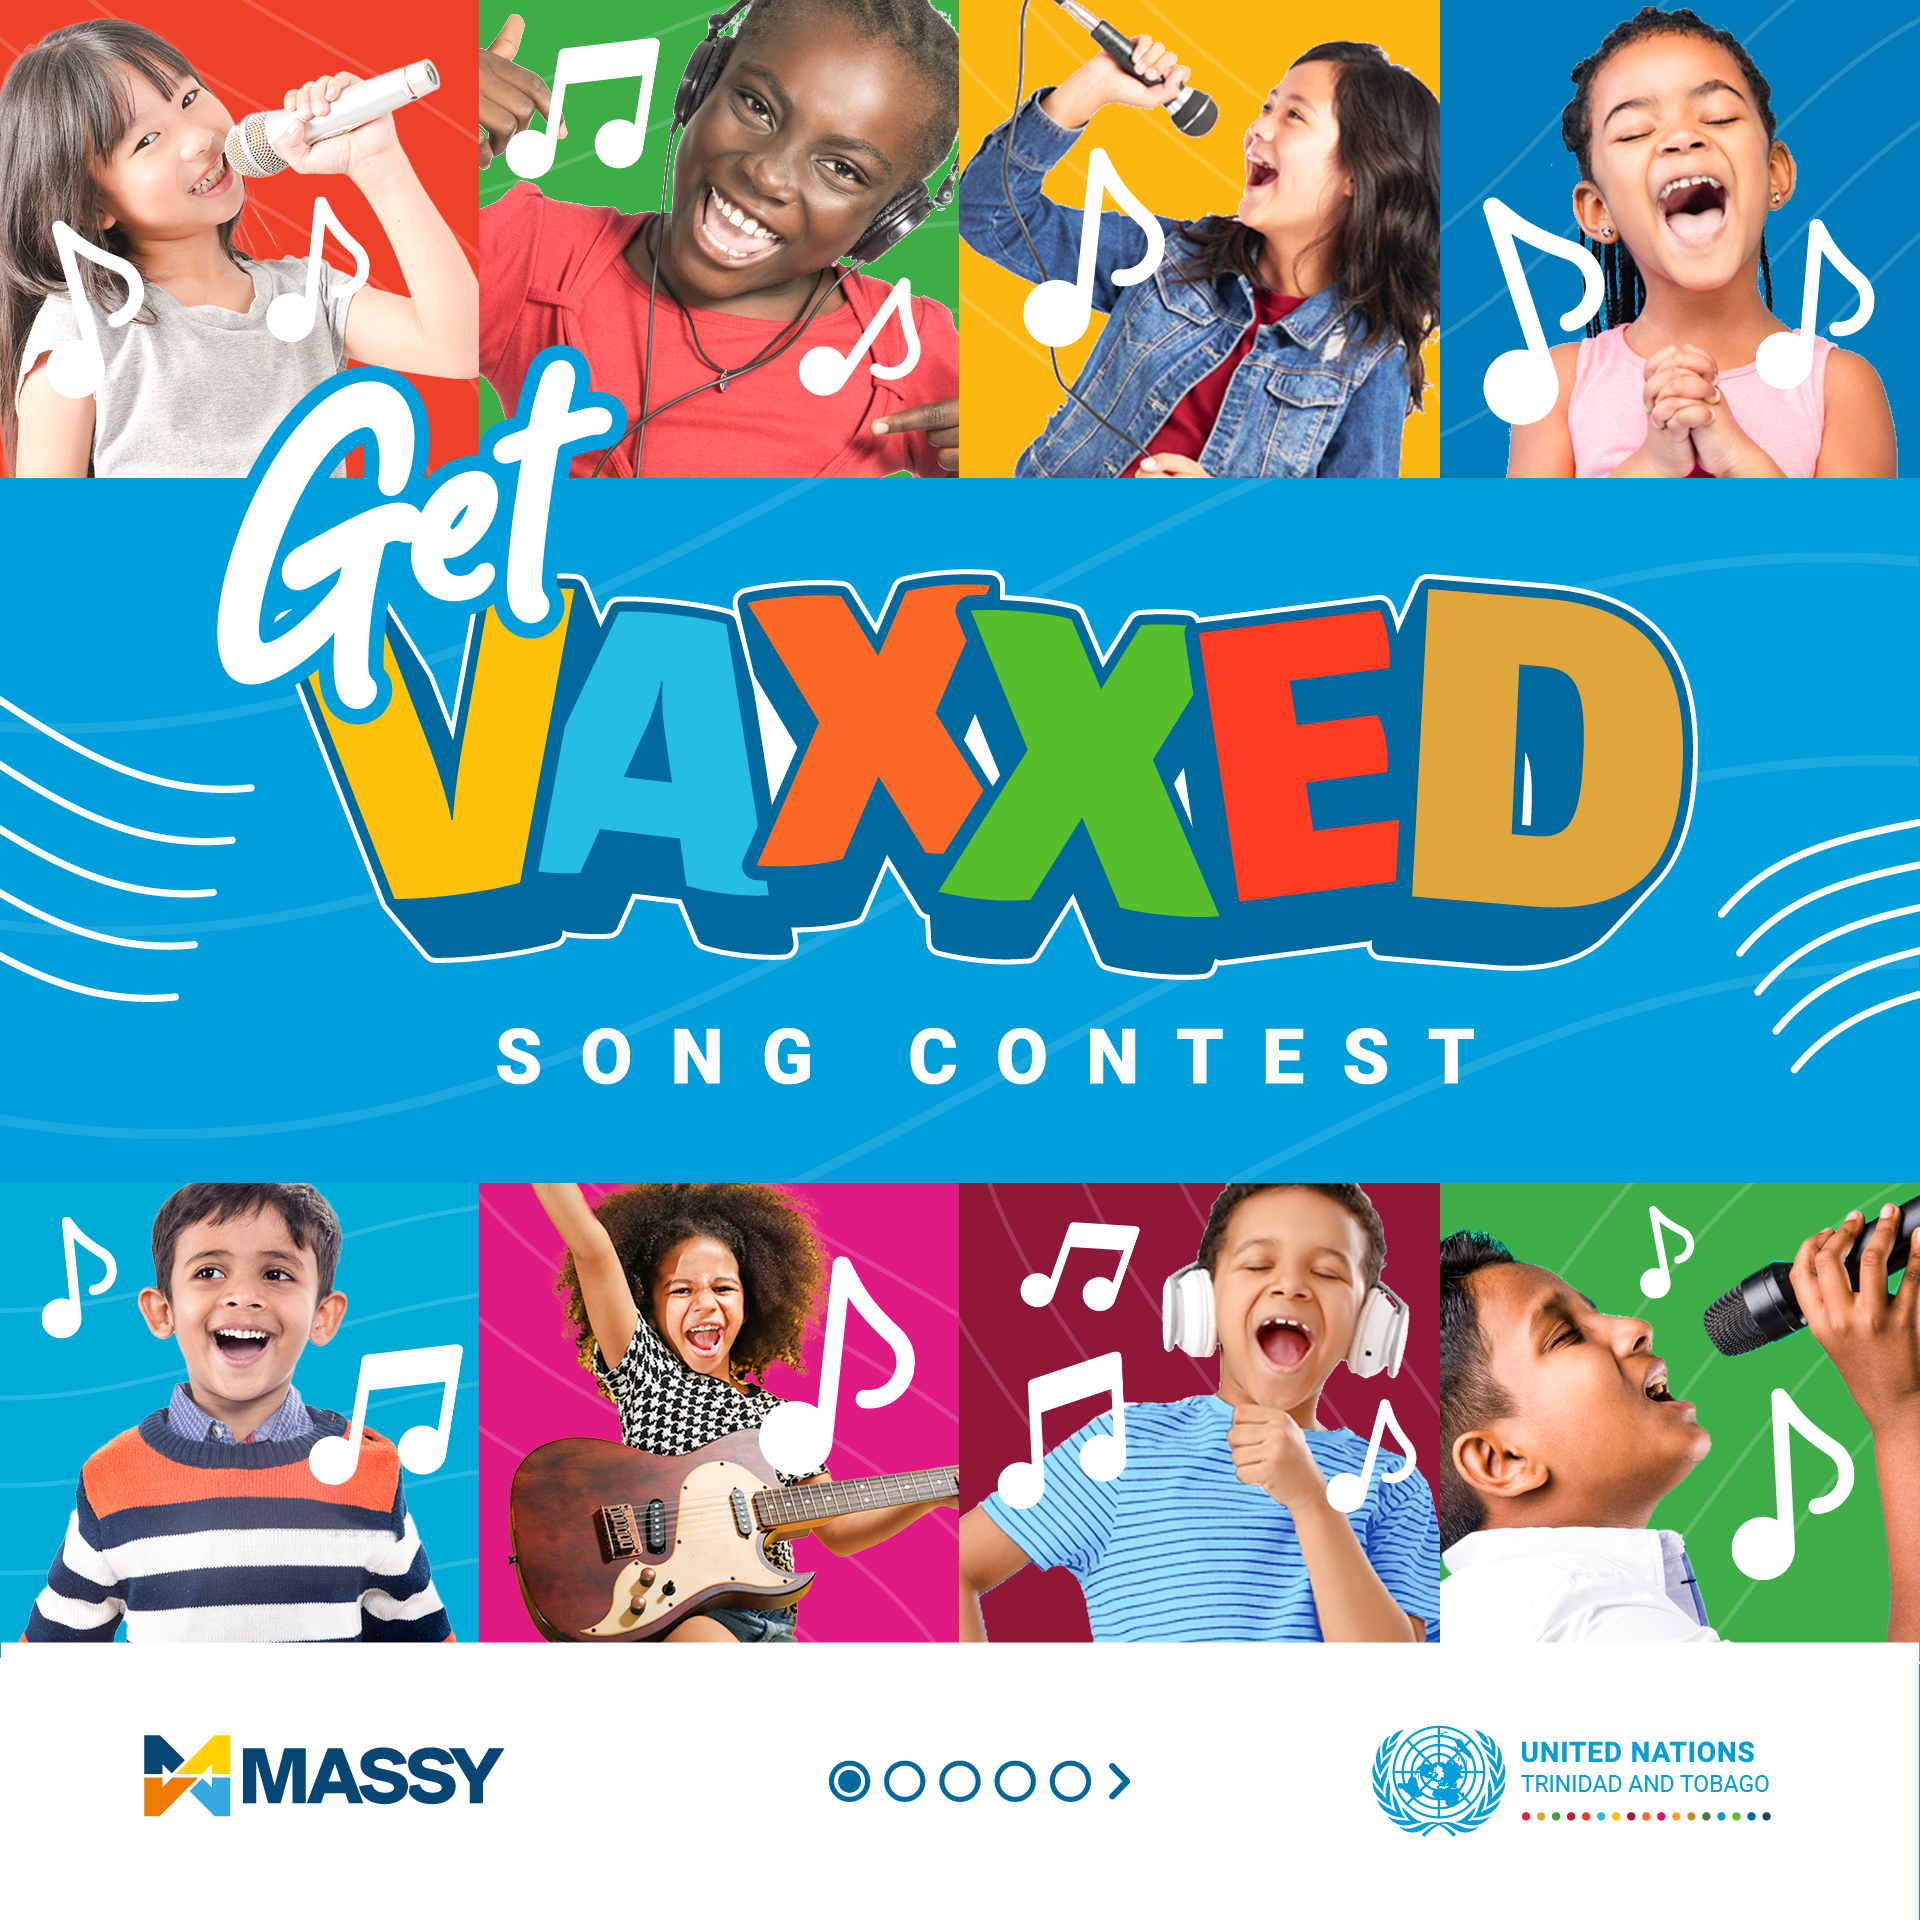 Get Vaxxed Song Contest